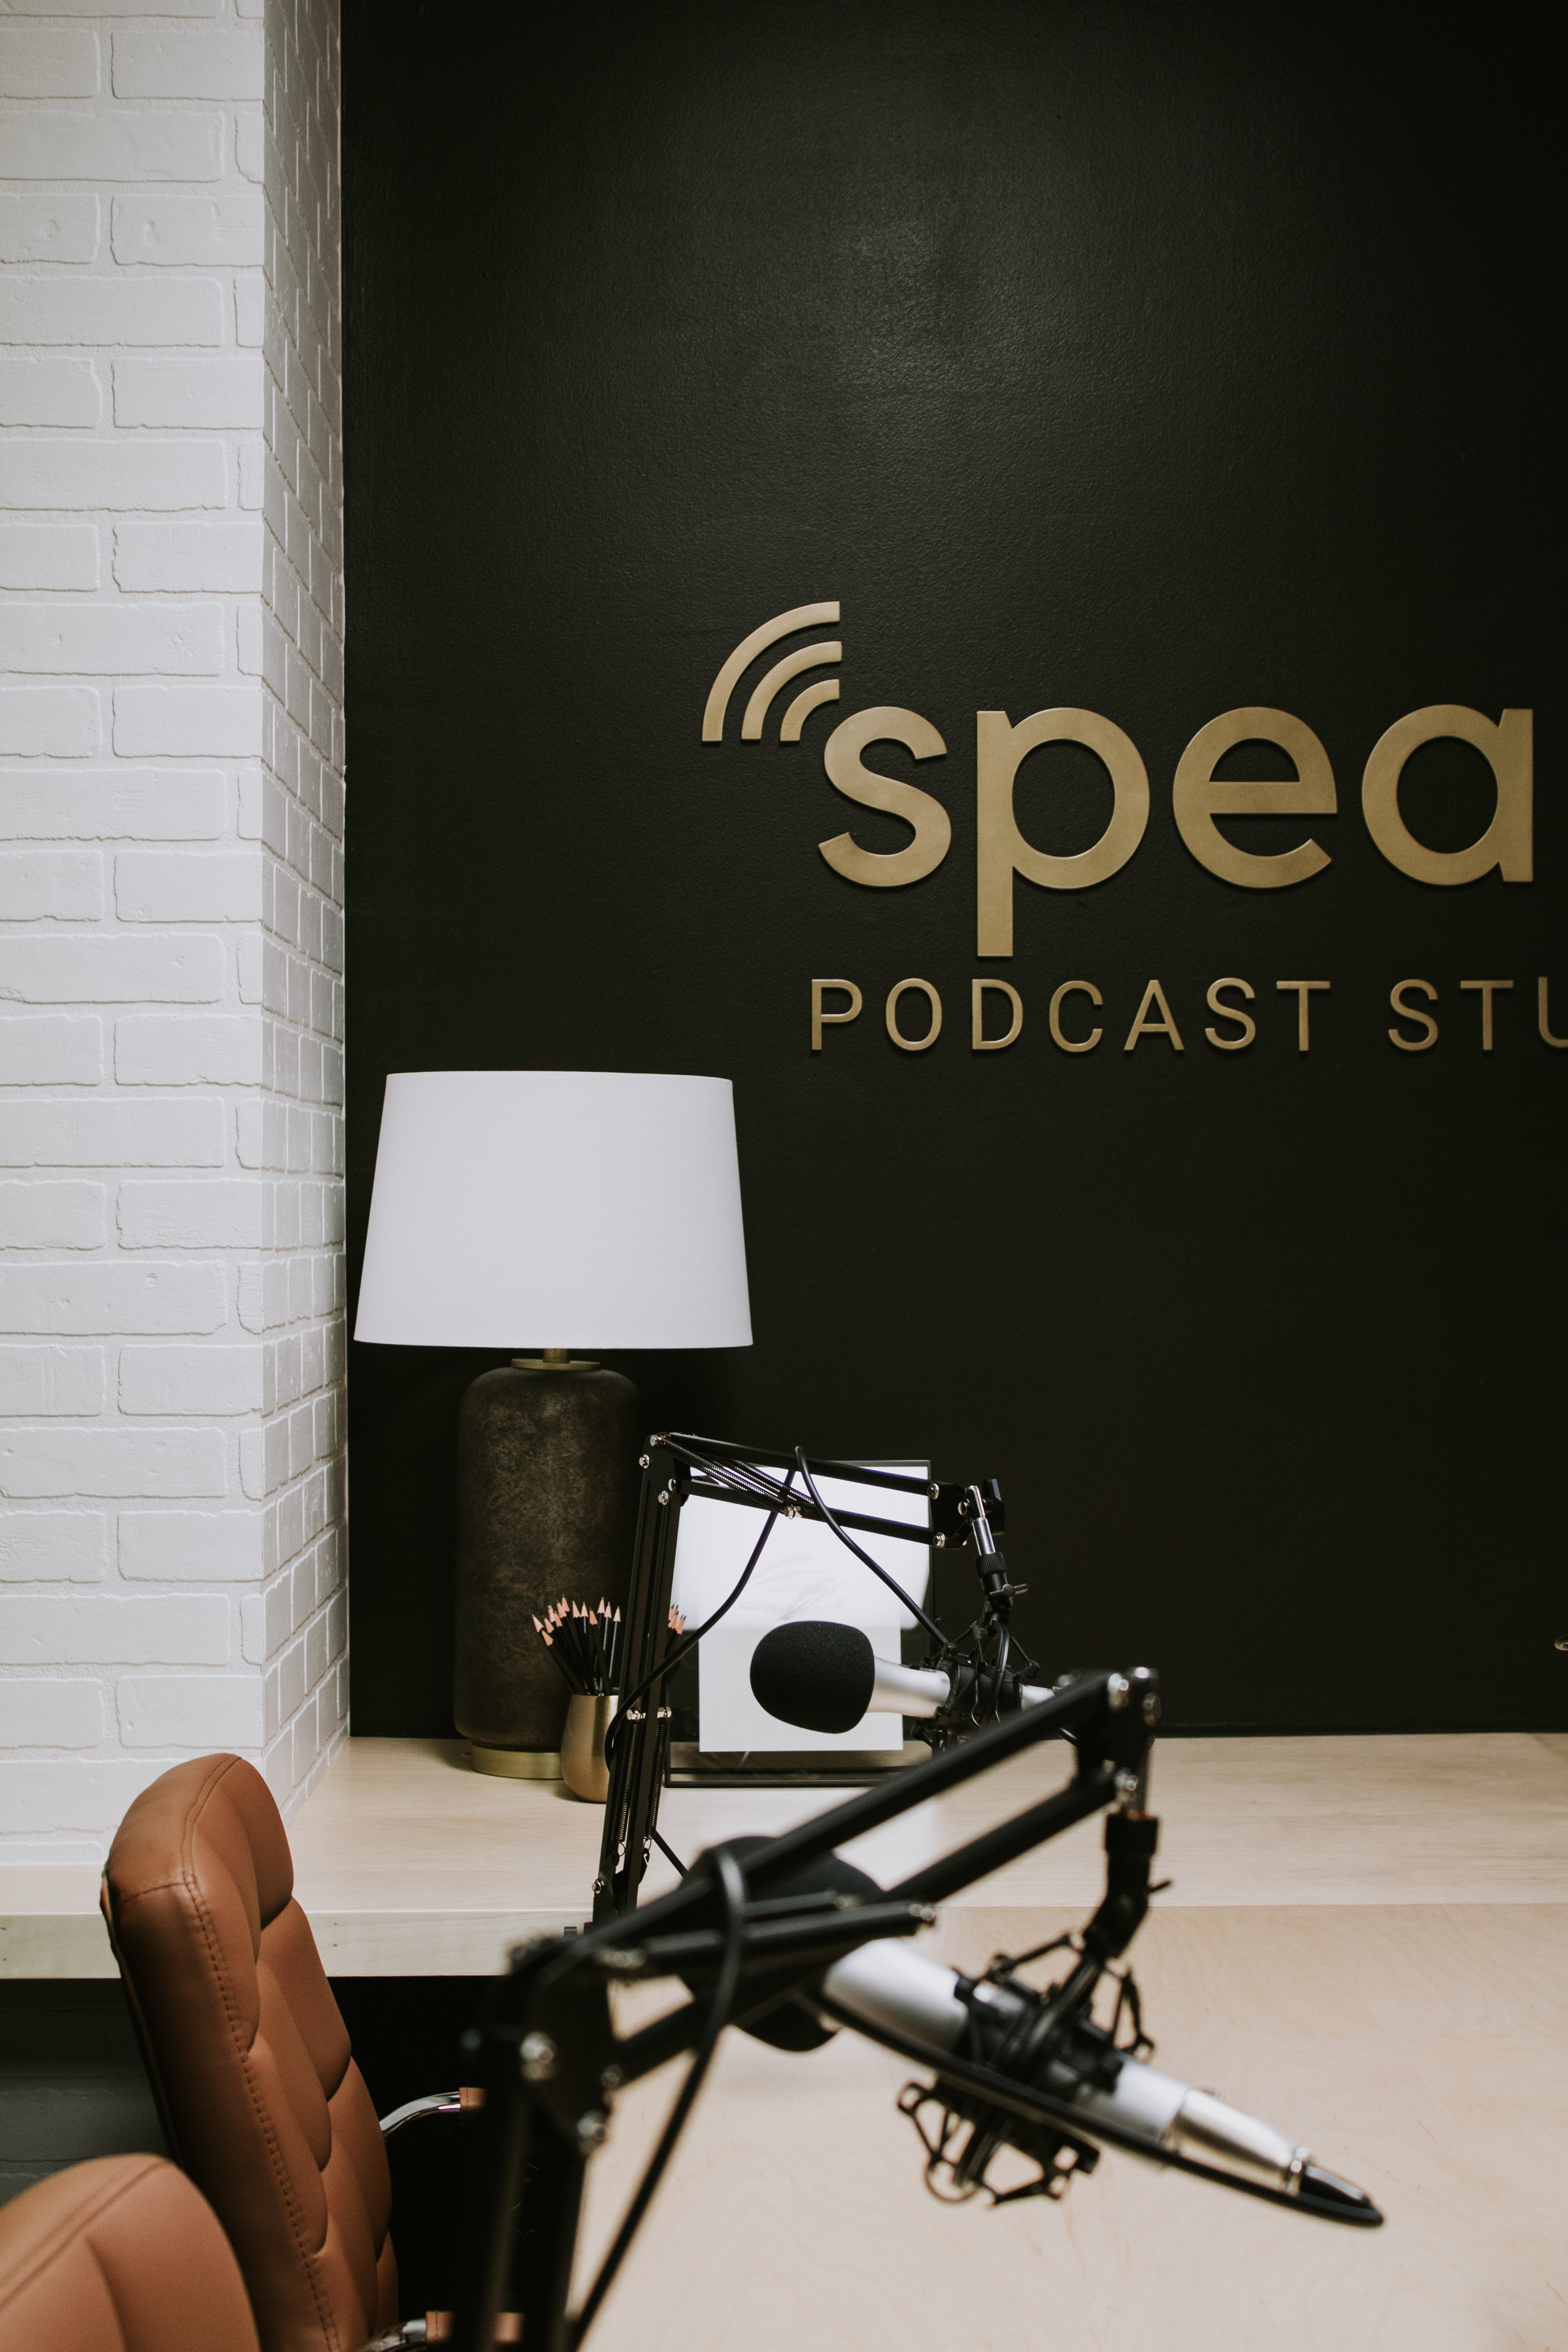 Speak Podcast Studio Reveal! Full transformation and makeover by Nadine Stay. Speak Podcast Studio is located in Lincoln, Nebraska. A podcast recording studio. Modern & moody office makeover with black walls, oak wood accent wall, and modern artwork. A cozy recording studio